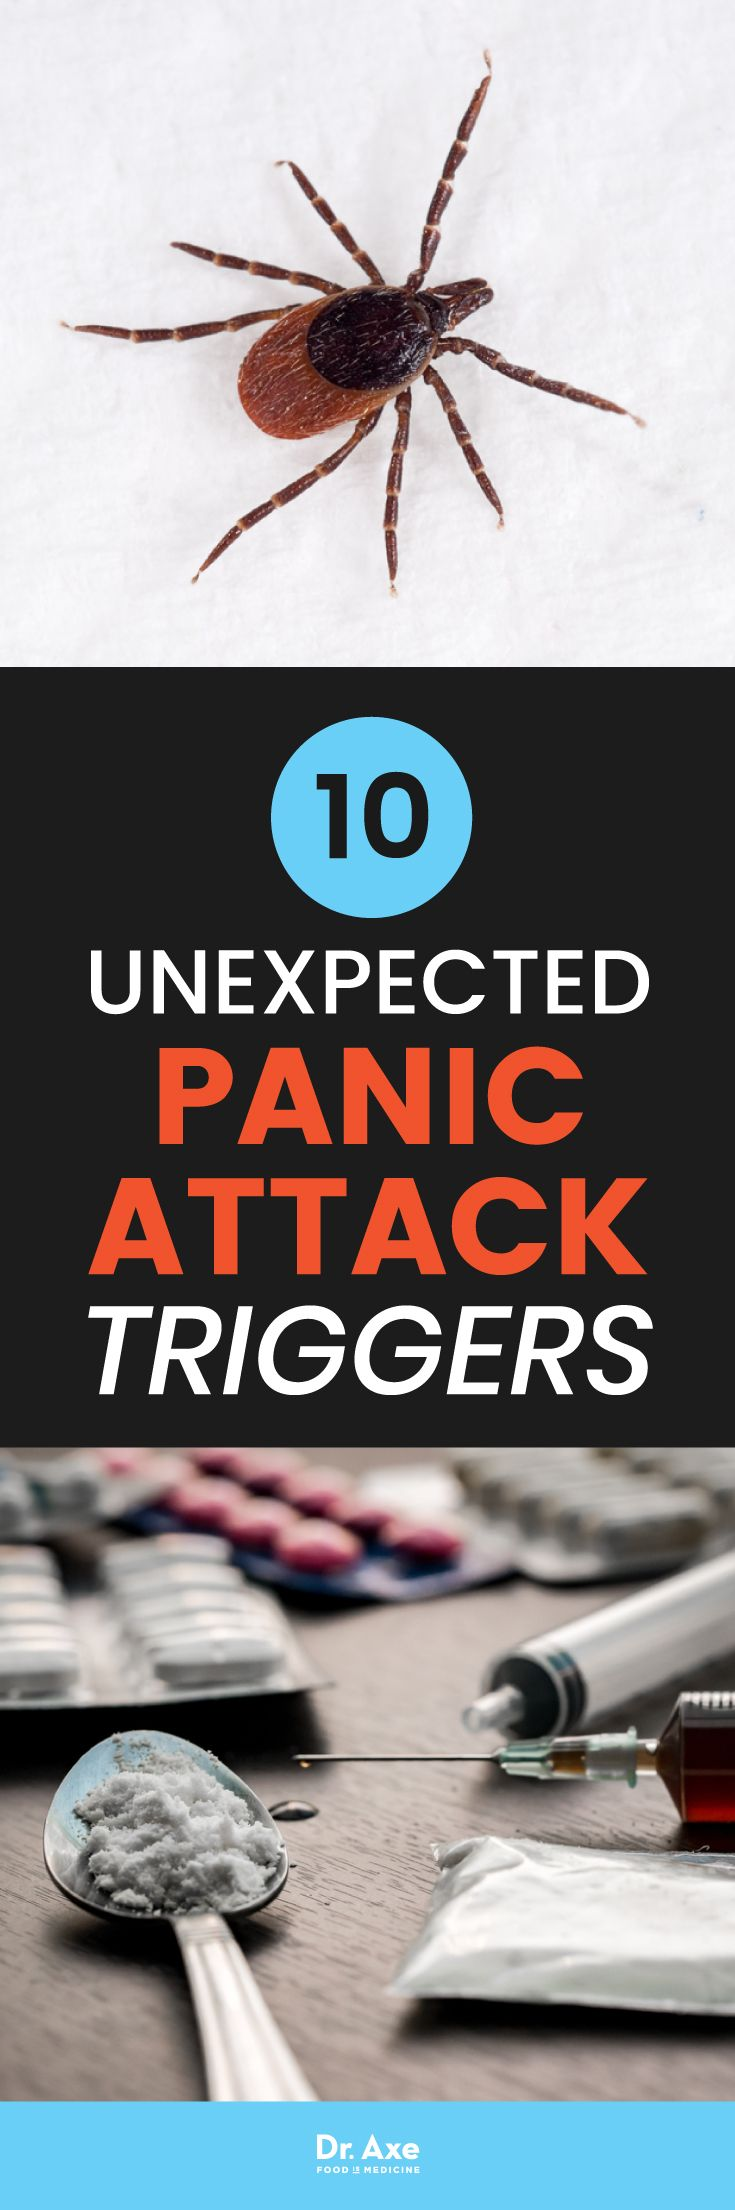 According to science, your panic attack symptoms could be triggered by some unexpected sources, including a cat scratch or tick bite, among other things.